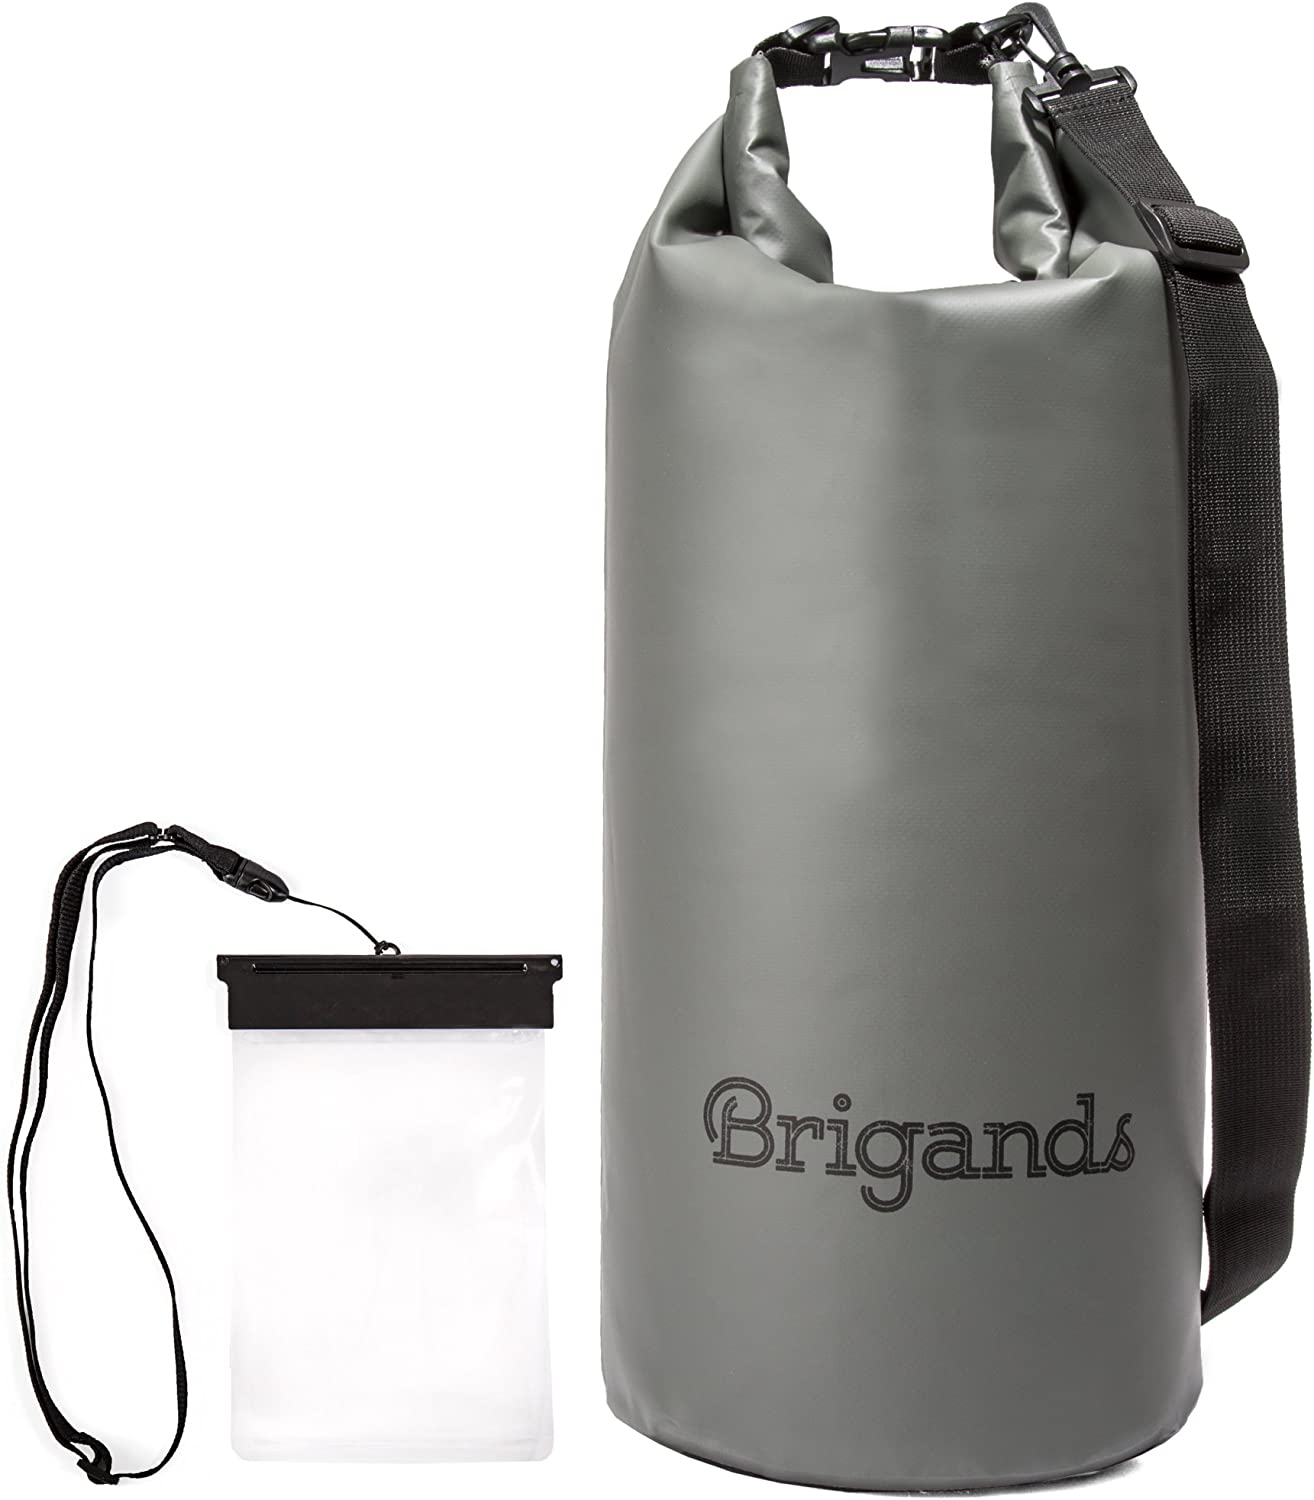 Brigands Waterproof Dry Bag with Phone Case